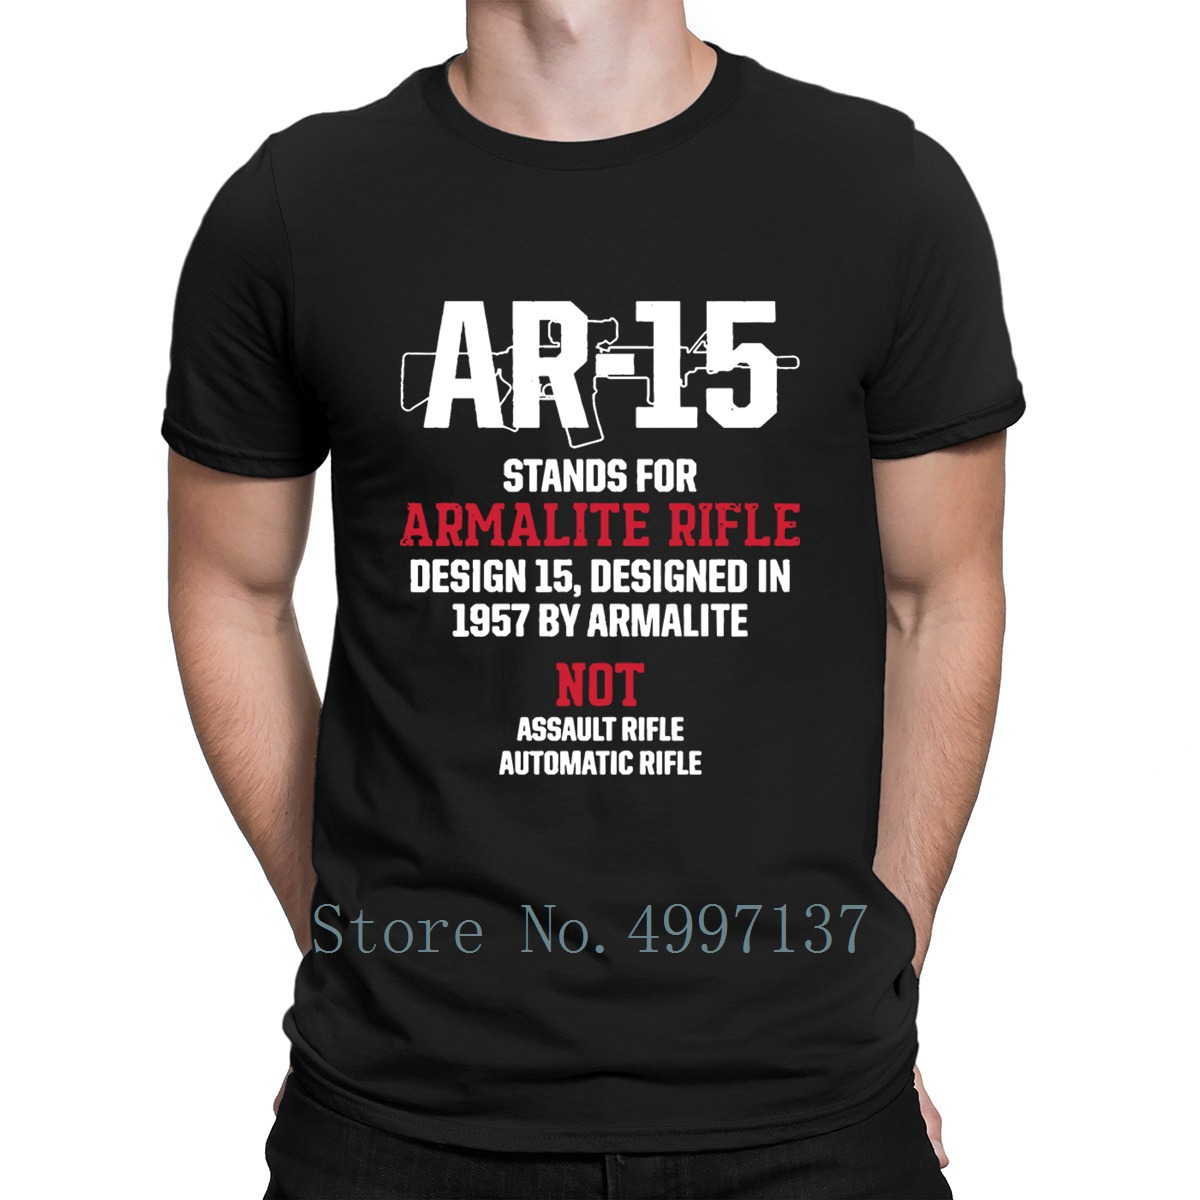 Patriotic Ar15 V5 M 0019 <font><b>Ar</b></font> 15 Stands For Armalite T <font><b>Shirt</b></font> Spring Autumn Pictures S-Xxxl 100% Cotton Funny Casual Designs <font><b>Shirt</b></font> image